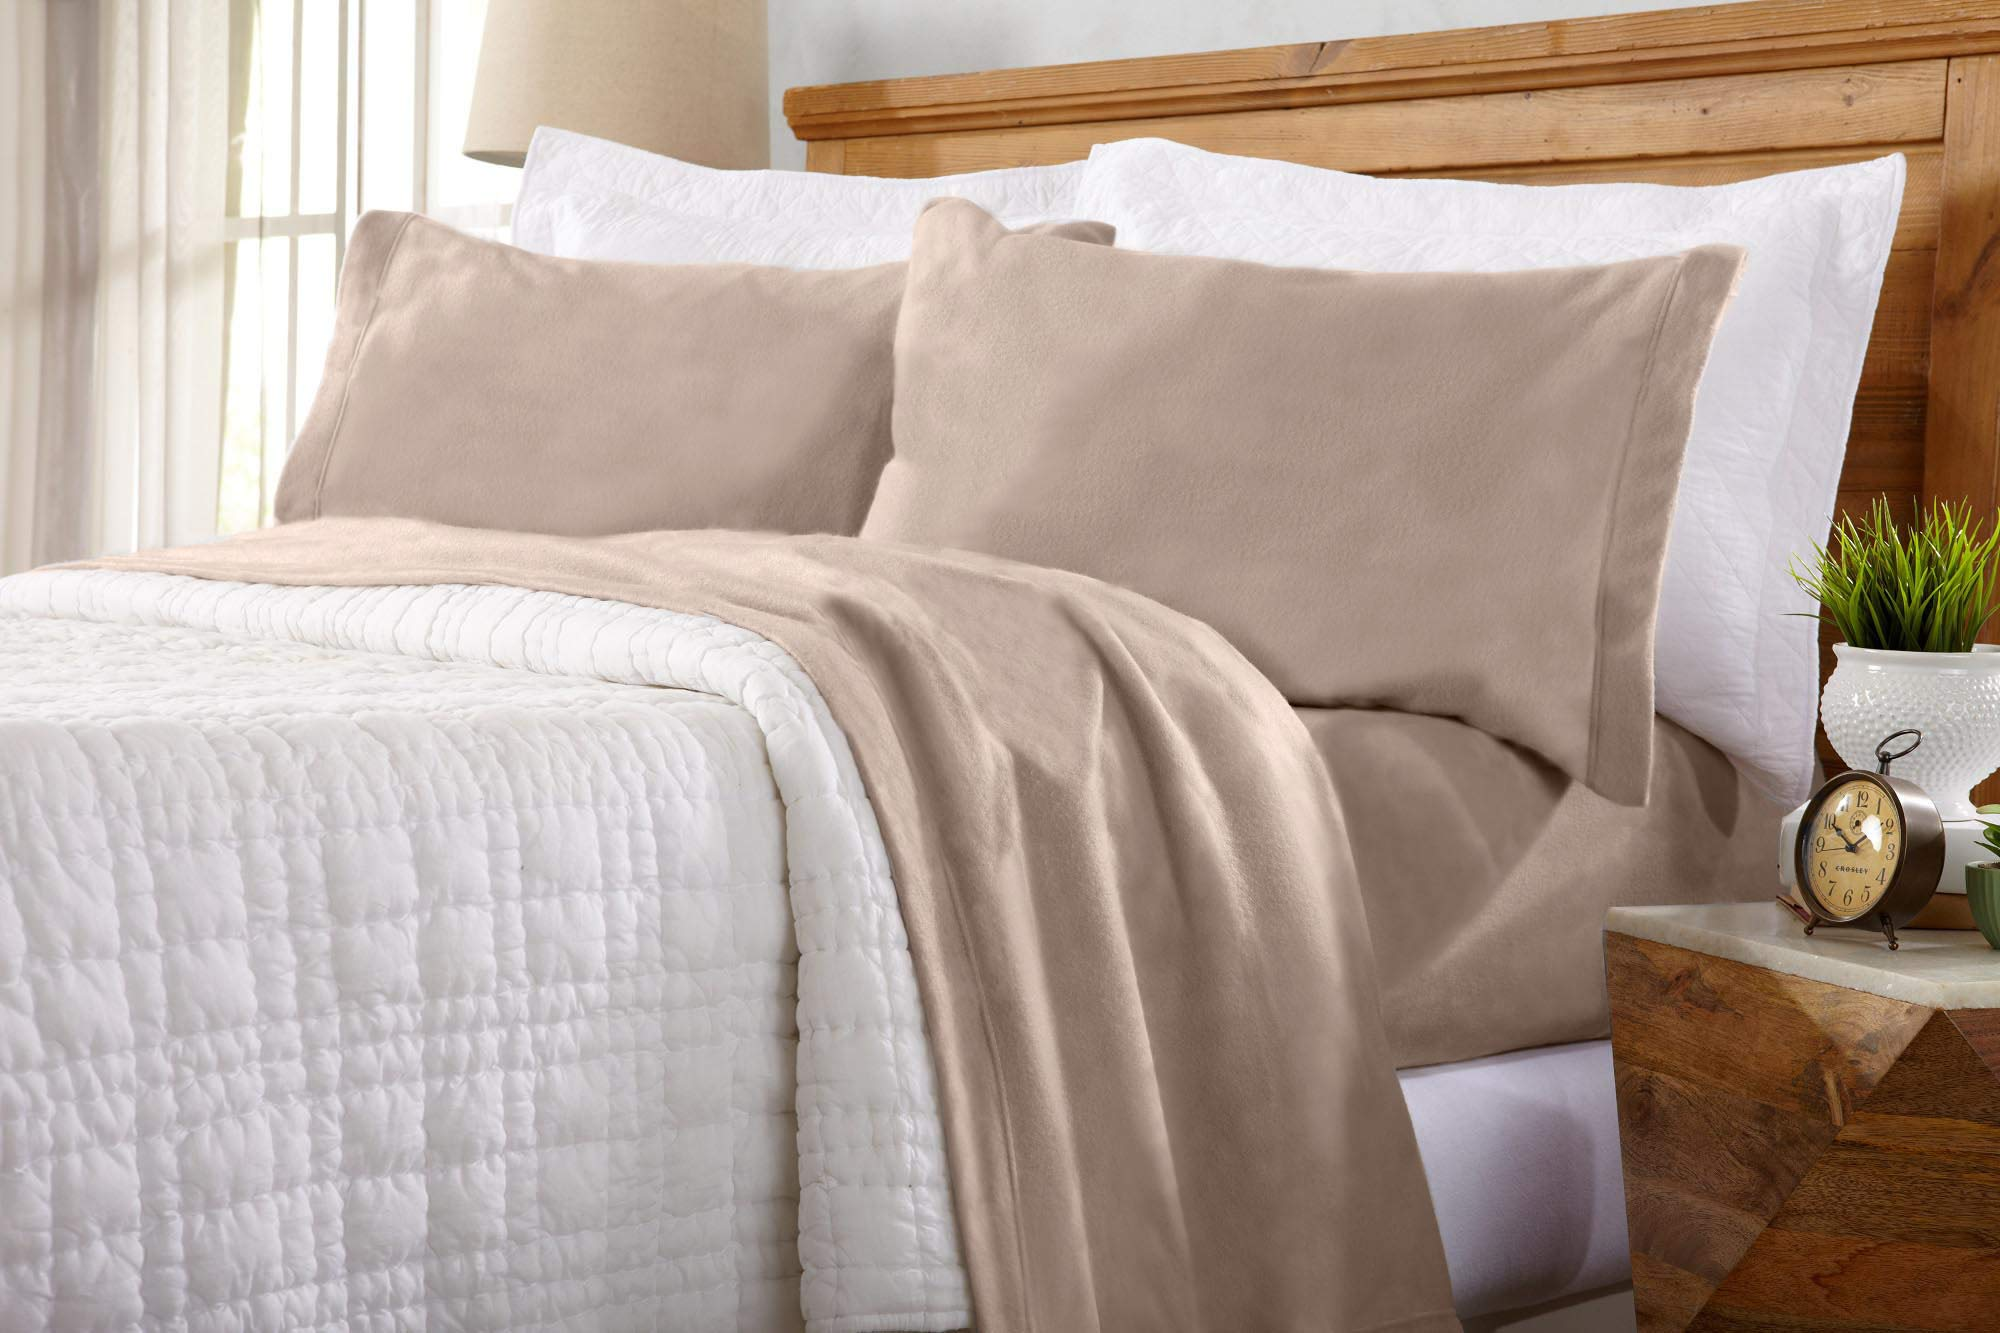 Home Fashion Designs Maya Collection Super Soft Extra Plush Fleece Sheet Set. Cozy, Warm, Durable, Smooth, Breathable Winter Sheets in Solid Colors (Twin, Taupe)